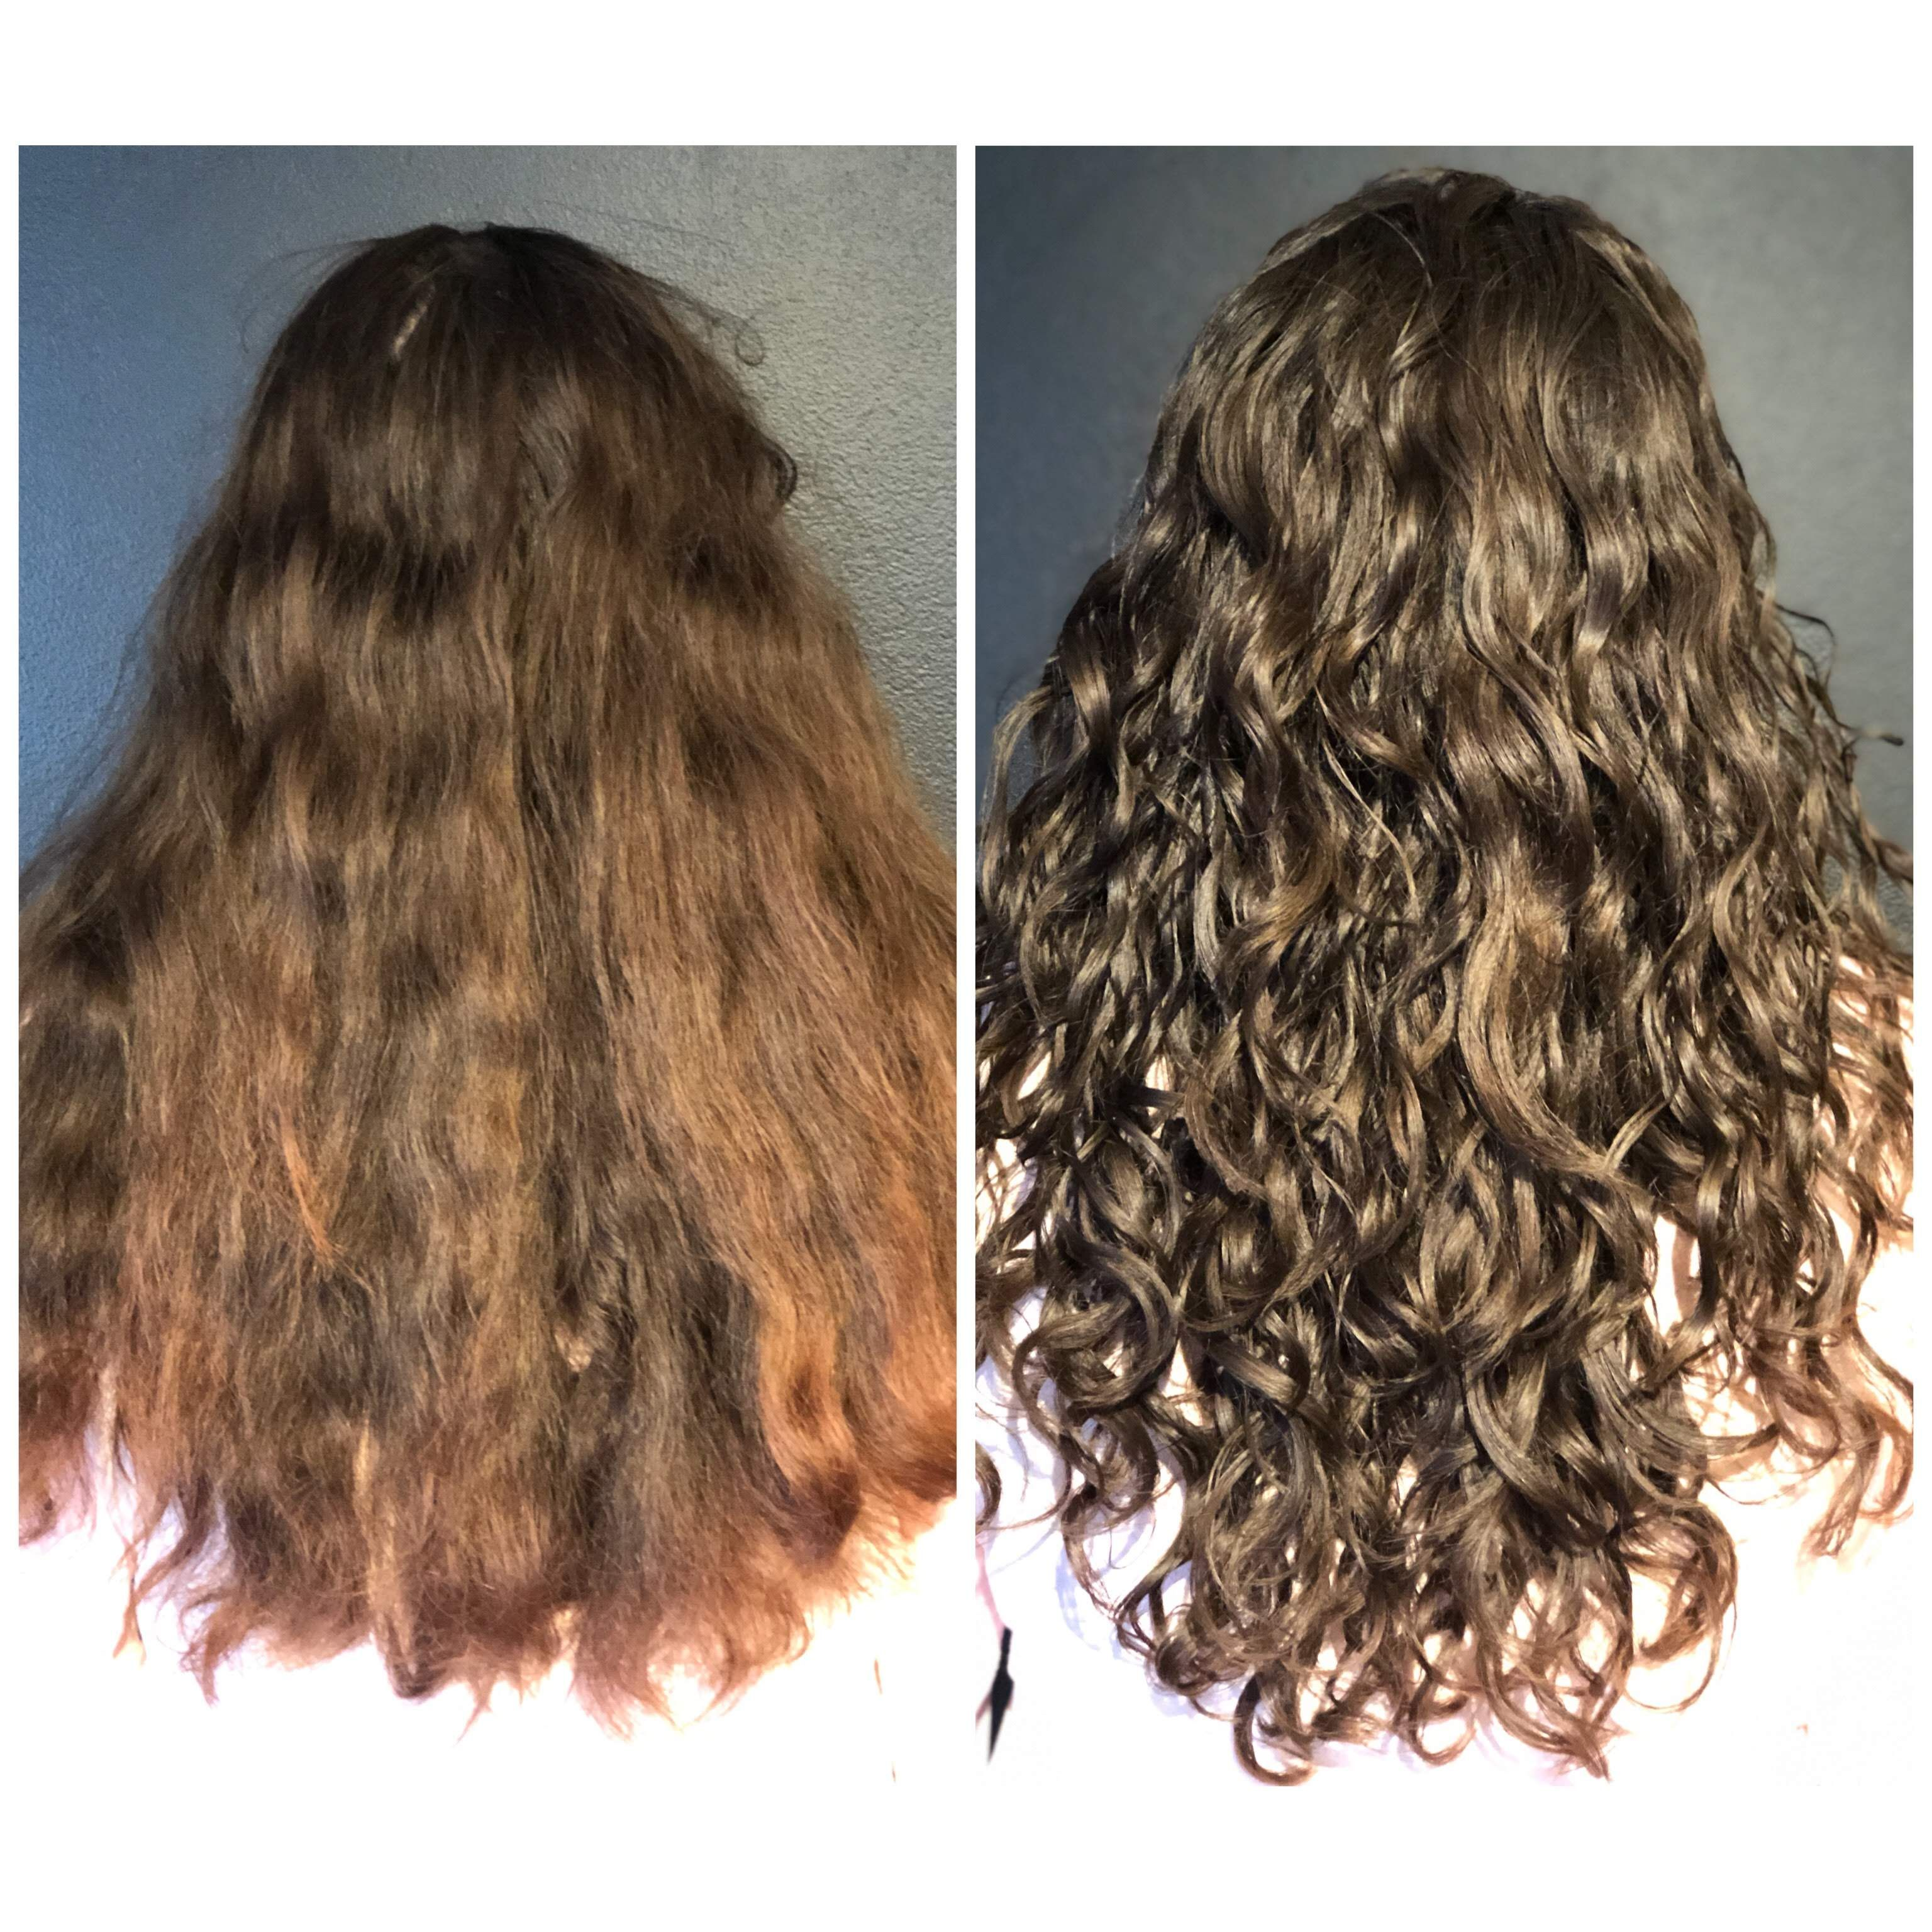 Ouidad Curly Hair Style By Adored Salon In 2020 Ouidad Haircut Curly Hair Styles Curly Hair Salon